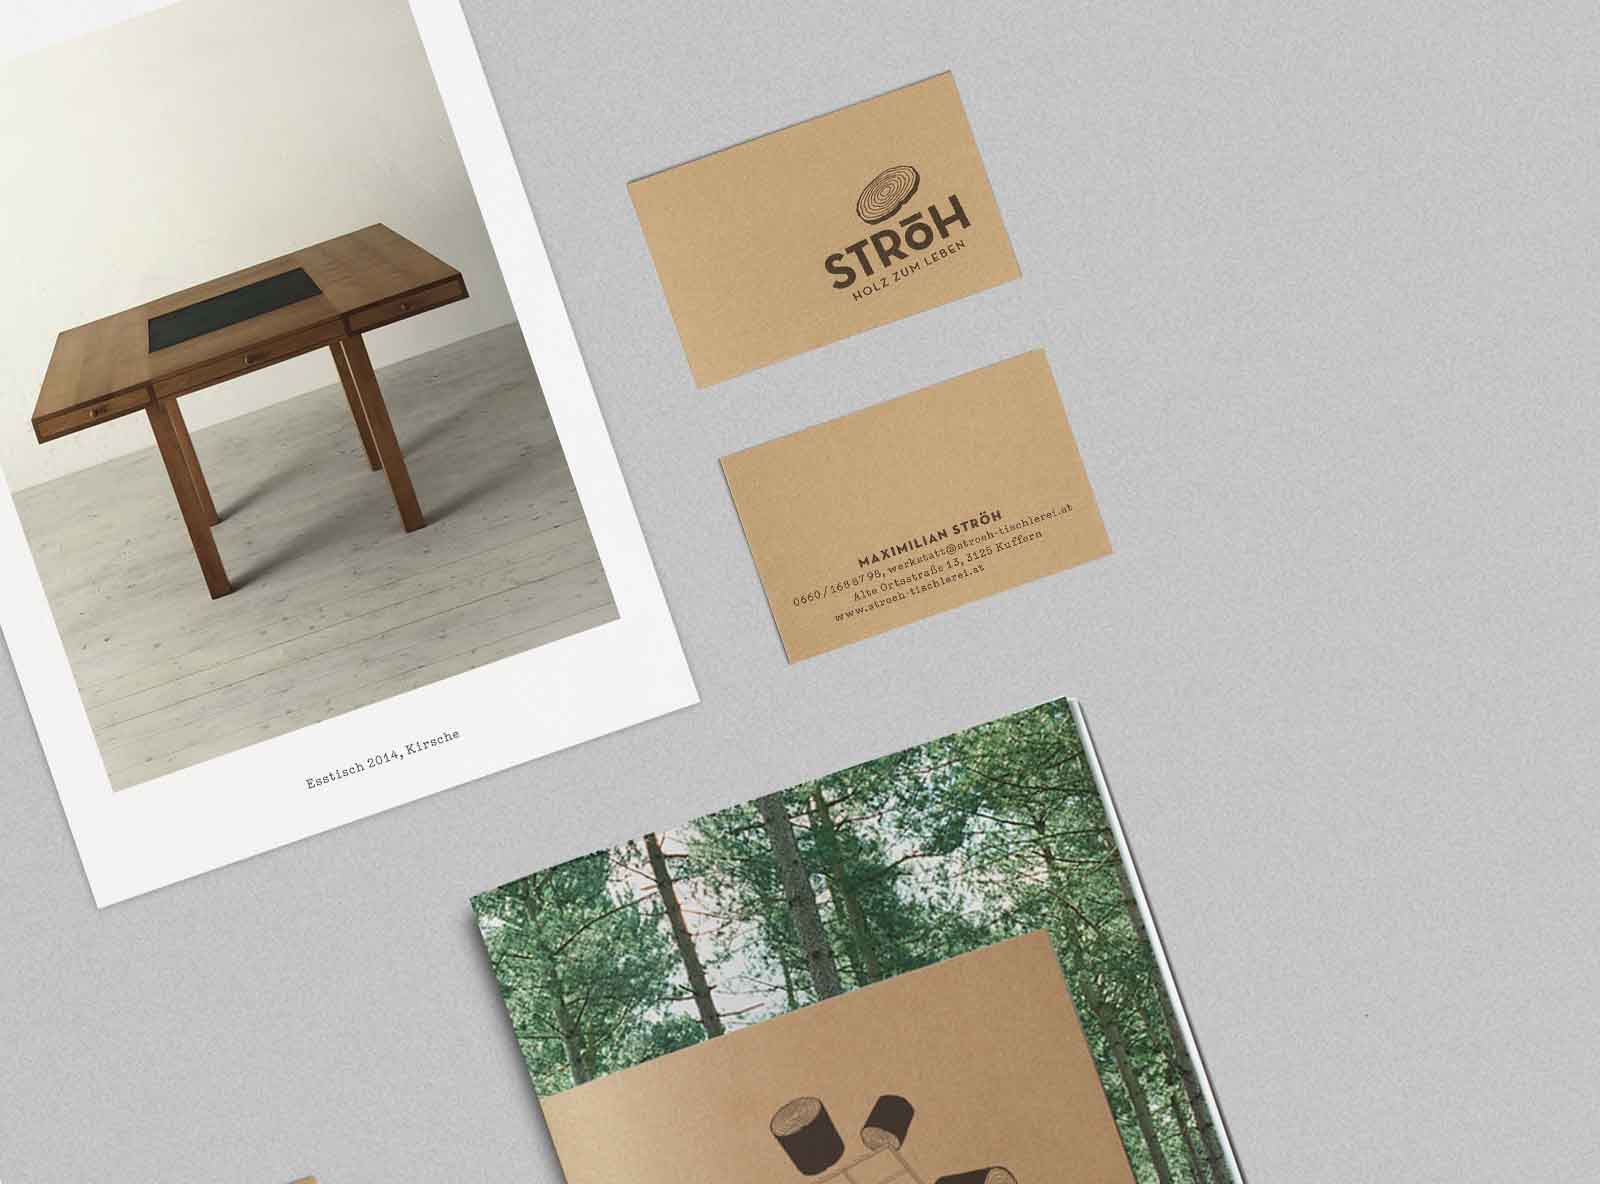 stroeh_stationary_1 3